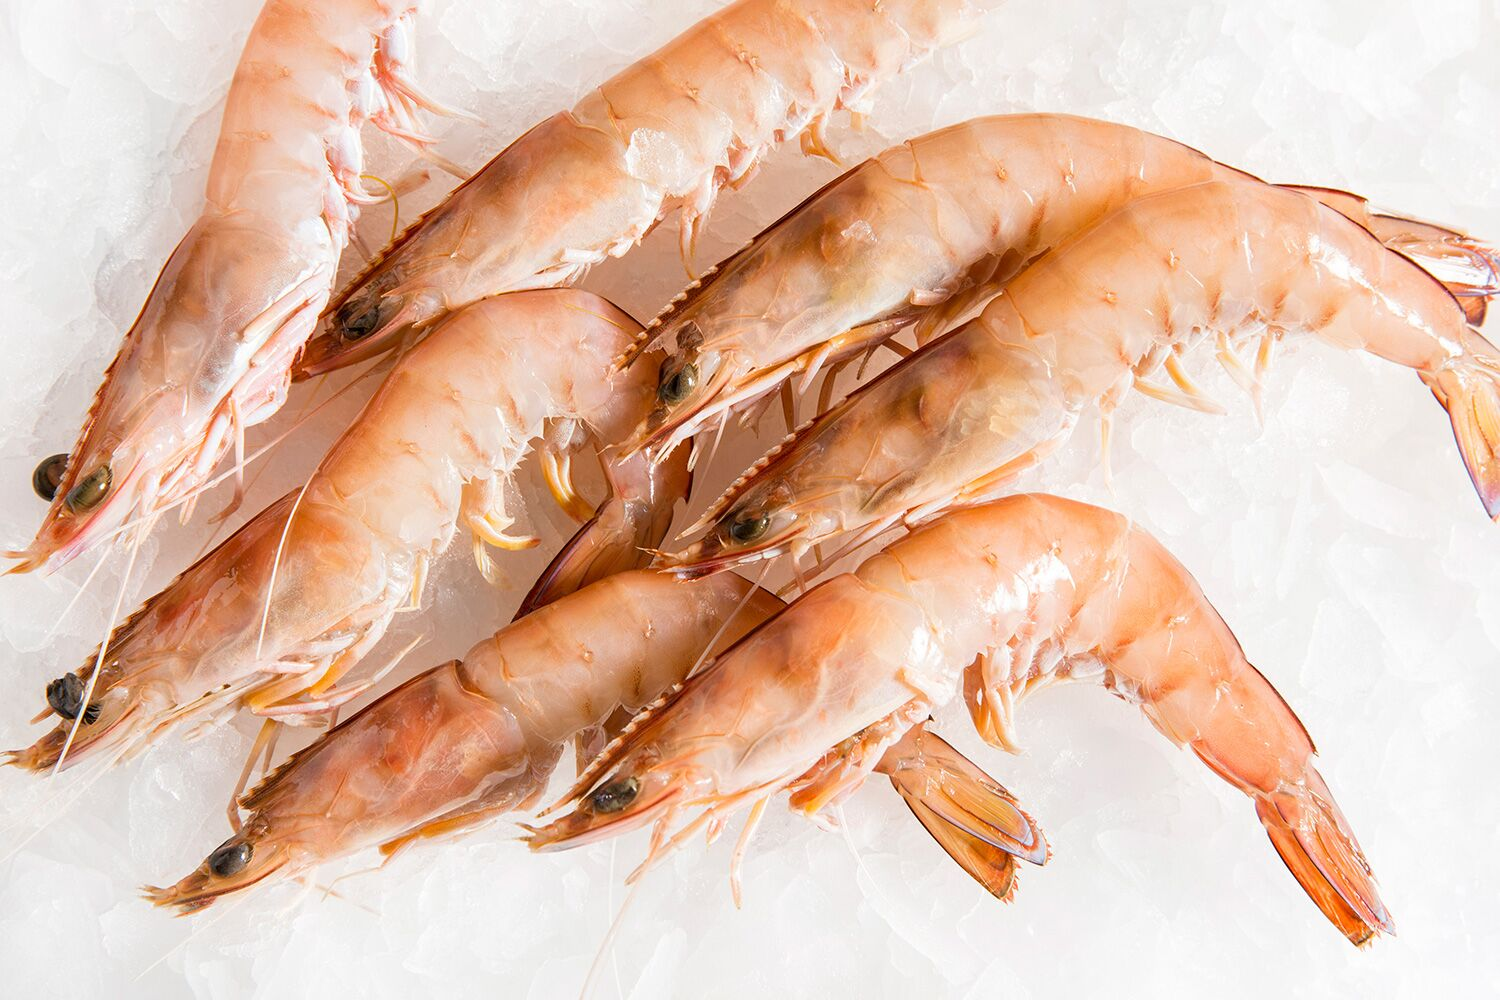 Prawn 16-20 Grade (35-40 Pcs/kg) -H/LESS & TAIL ON